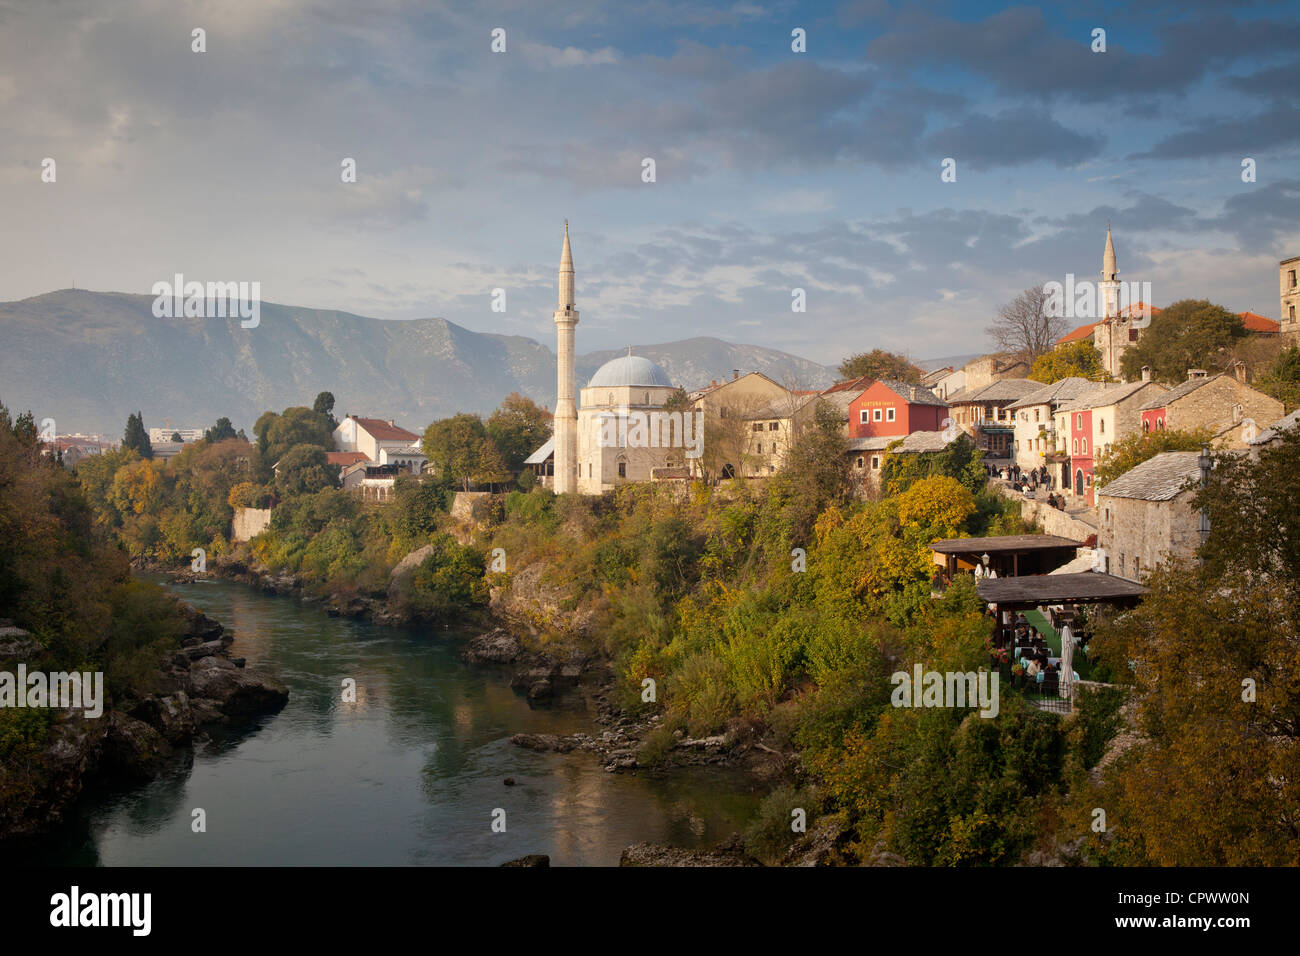 old town, Mostar, Bosnia and Herzegovina - Stock Image